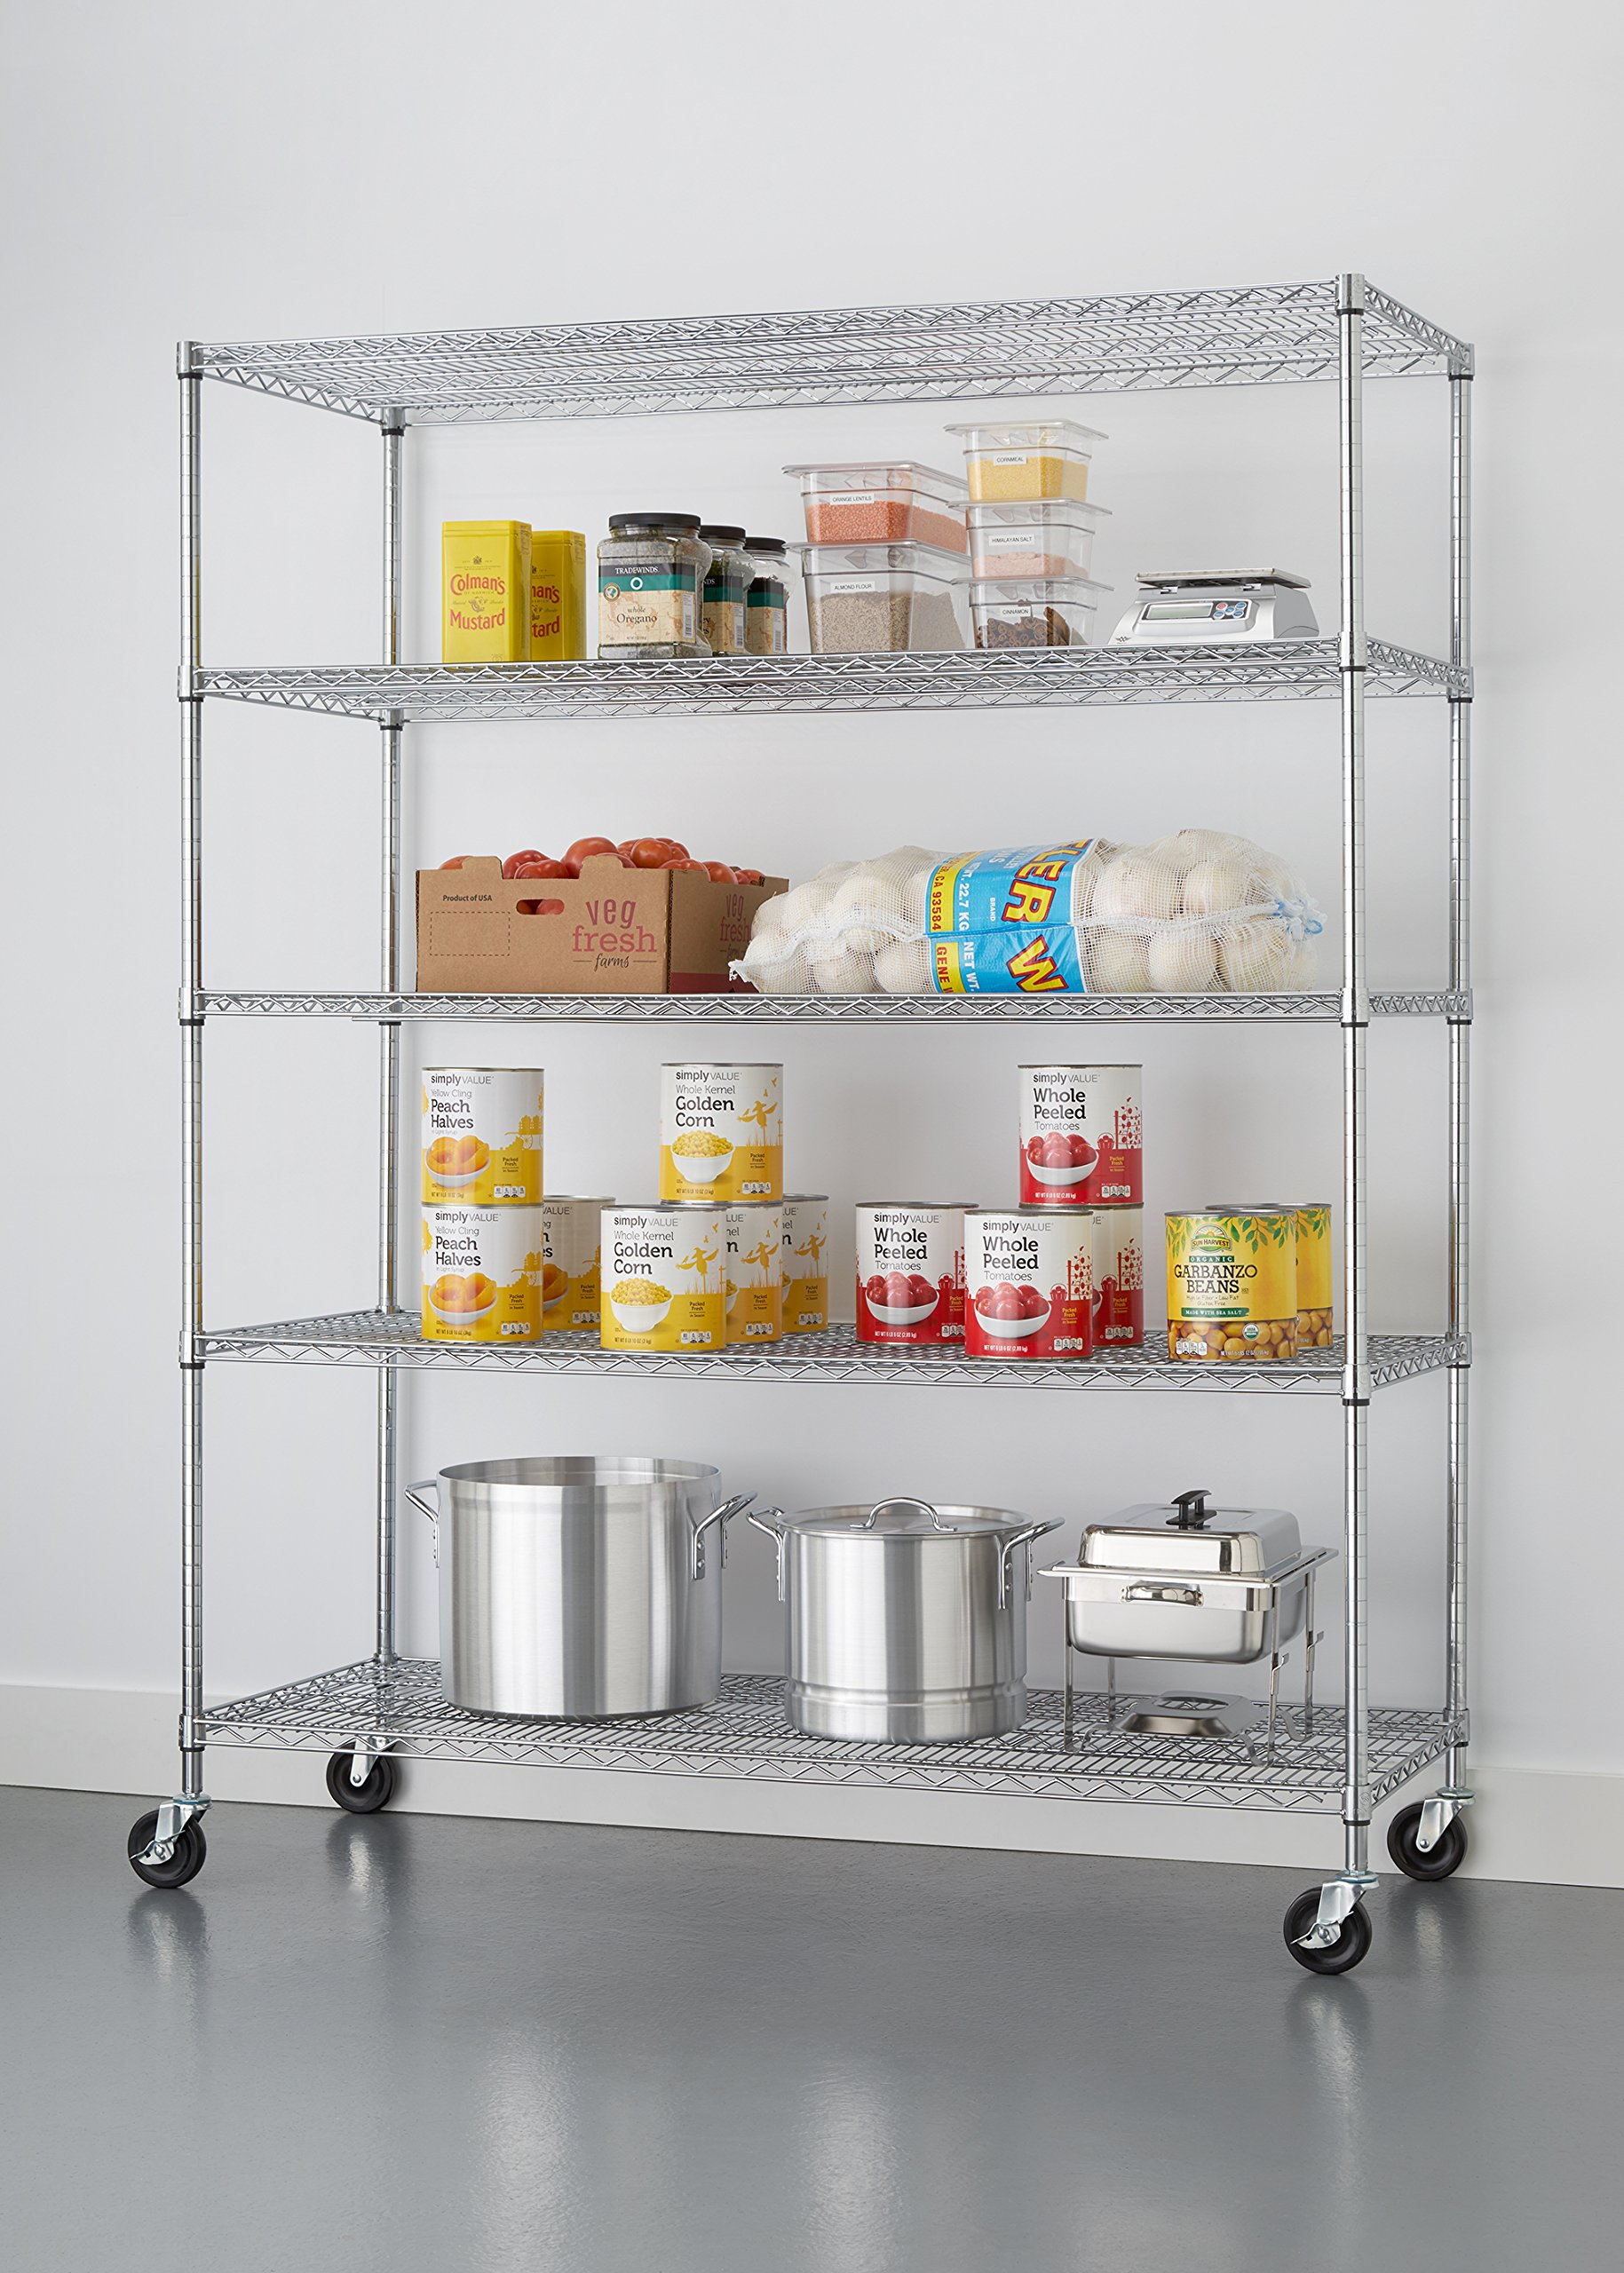 TRINITY 5-Tier NSF Heavy Duty X-Large Wire Shelving Rack with Wheels, 60 by 24 by 72-Inch, Chrome by Trinity (Image #2)